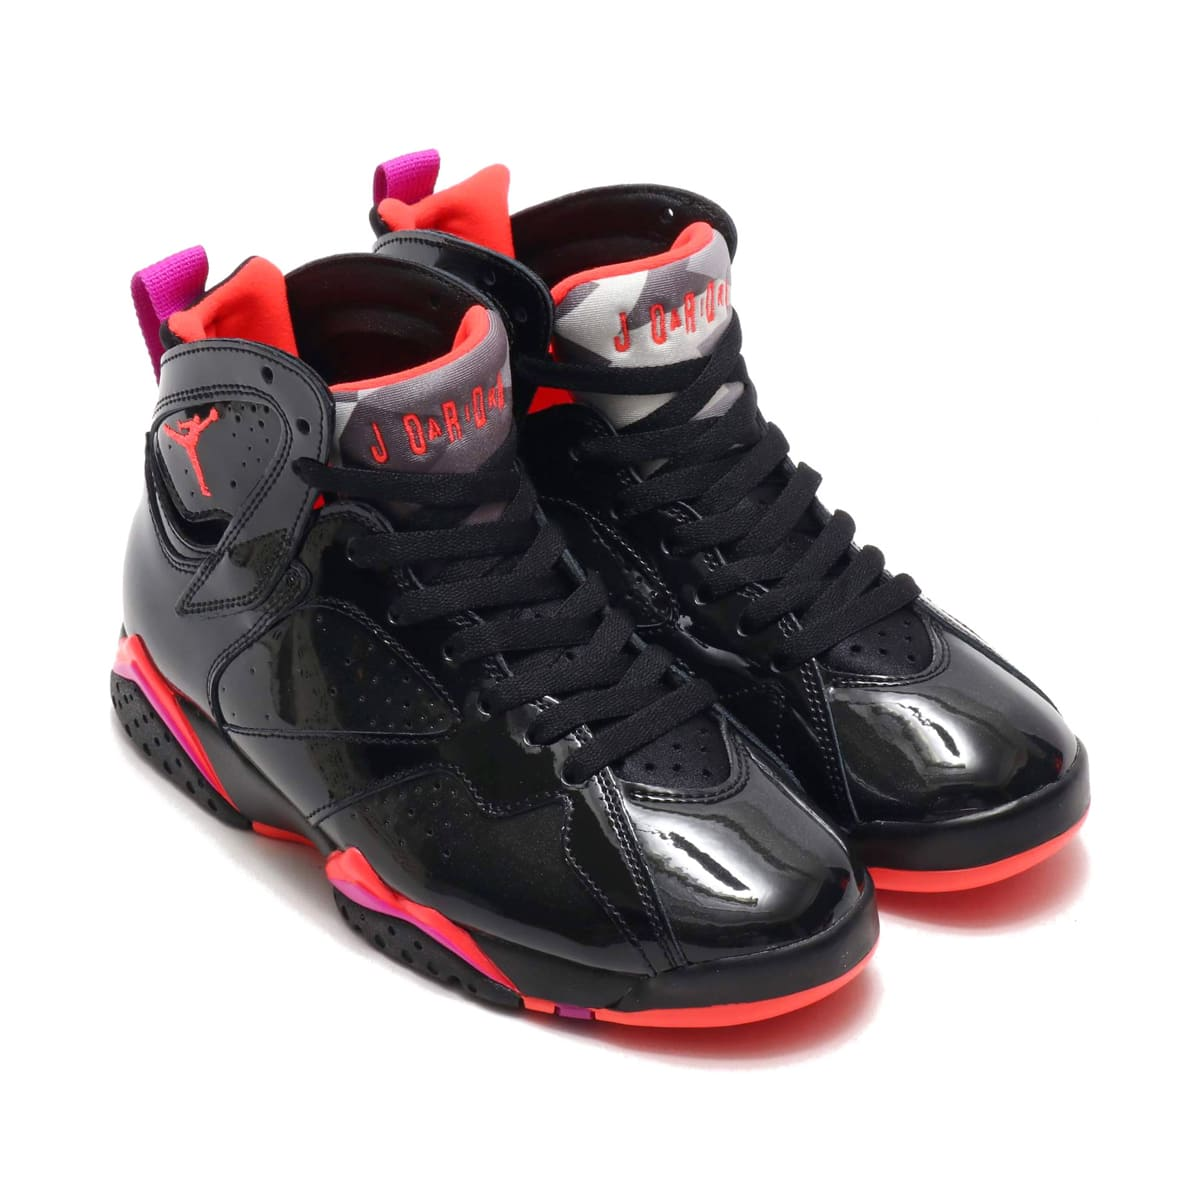 JORDAN BRAND WMNS AIR JORDAN 7 RETRO BLACK/BRIGHT CRIMSON-ANTHRACITE 19HO-S_photo_large